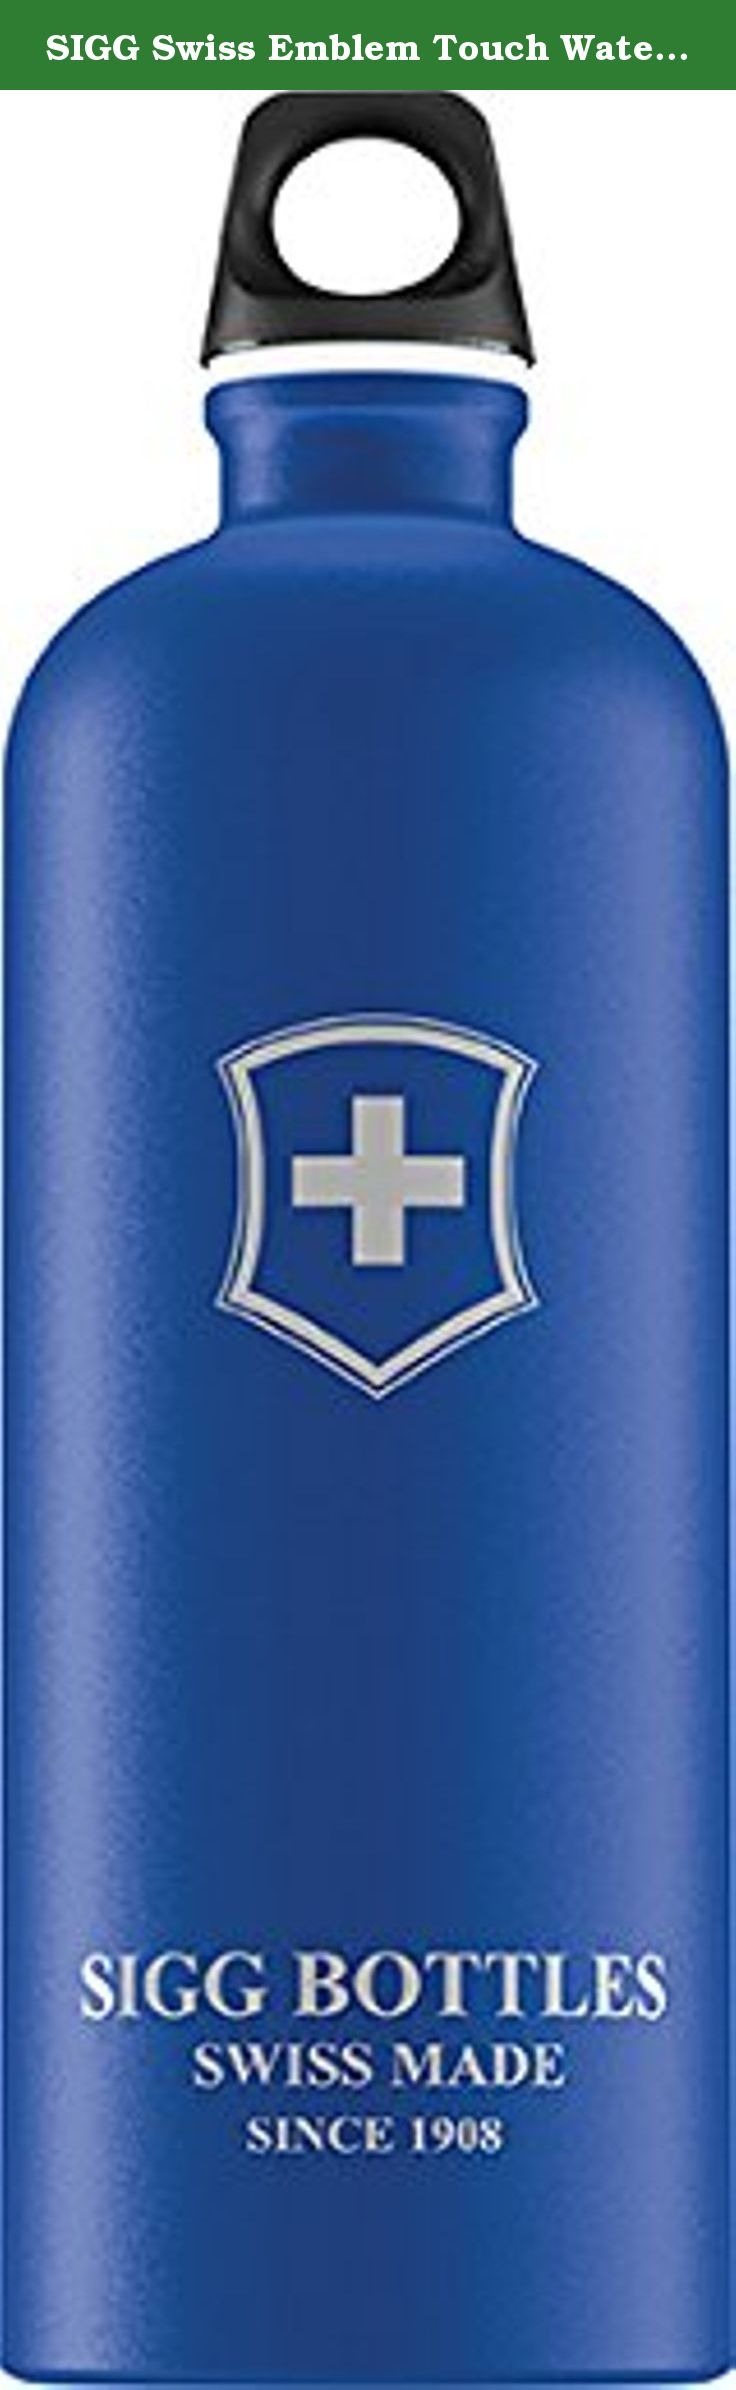 SIGG Swiss Emblem Touch Water Bottle, Blue, 1-Liter. A safe, stylish alternative to plastic water bottles, SIGG water bottles are a great choice for transporting beverages on your daily commute or while backcountry hiking. This ultra-lightweight bottle is extruded from a single piece of aluminum and holds 1 liter of fluid (33.8 ounces). Designed to fit your on-the-go lifestyle, it comes with a loop top bottle cap, which may be secured via hook or carabineer clip to a backpack or daypack.